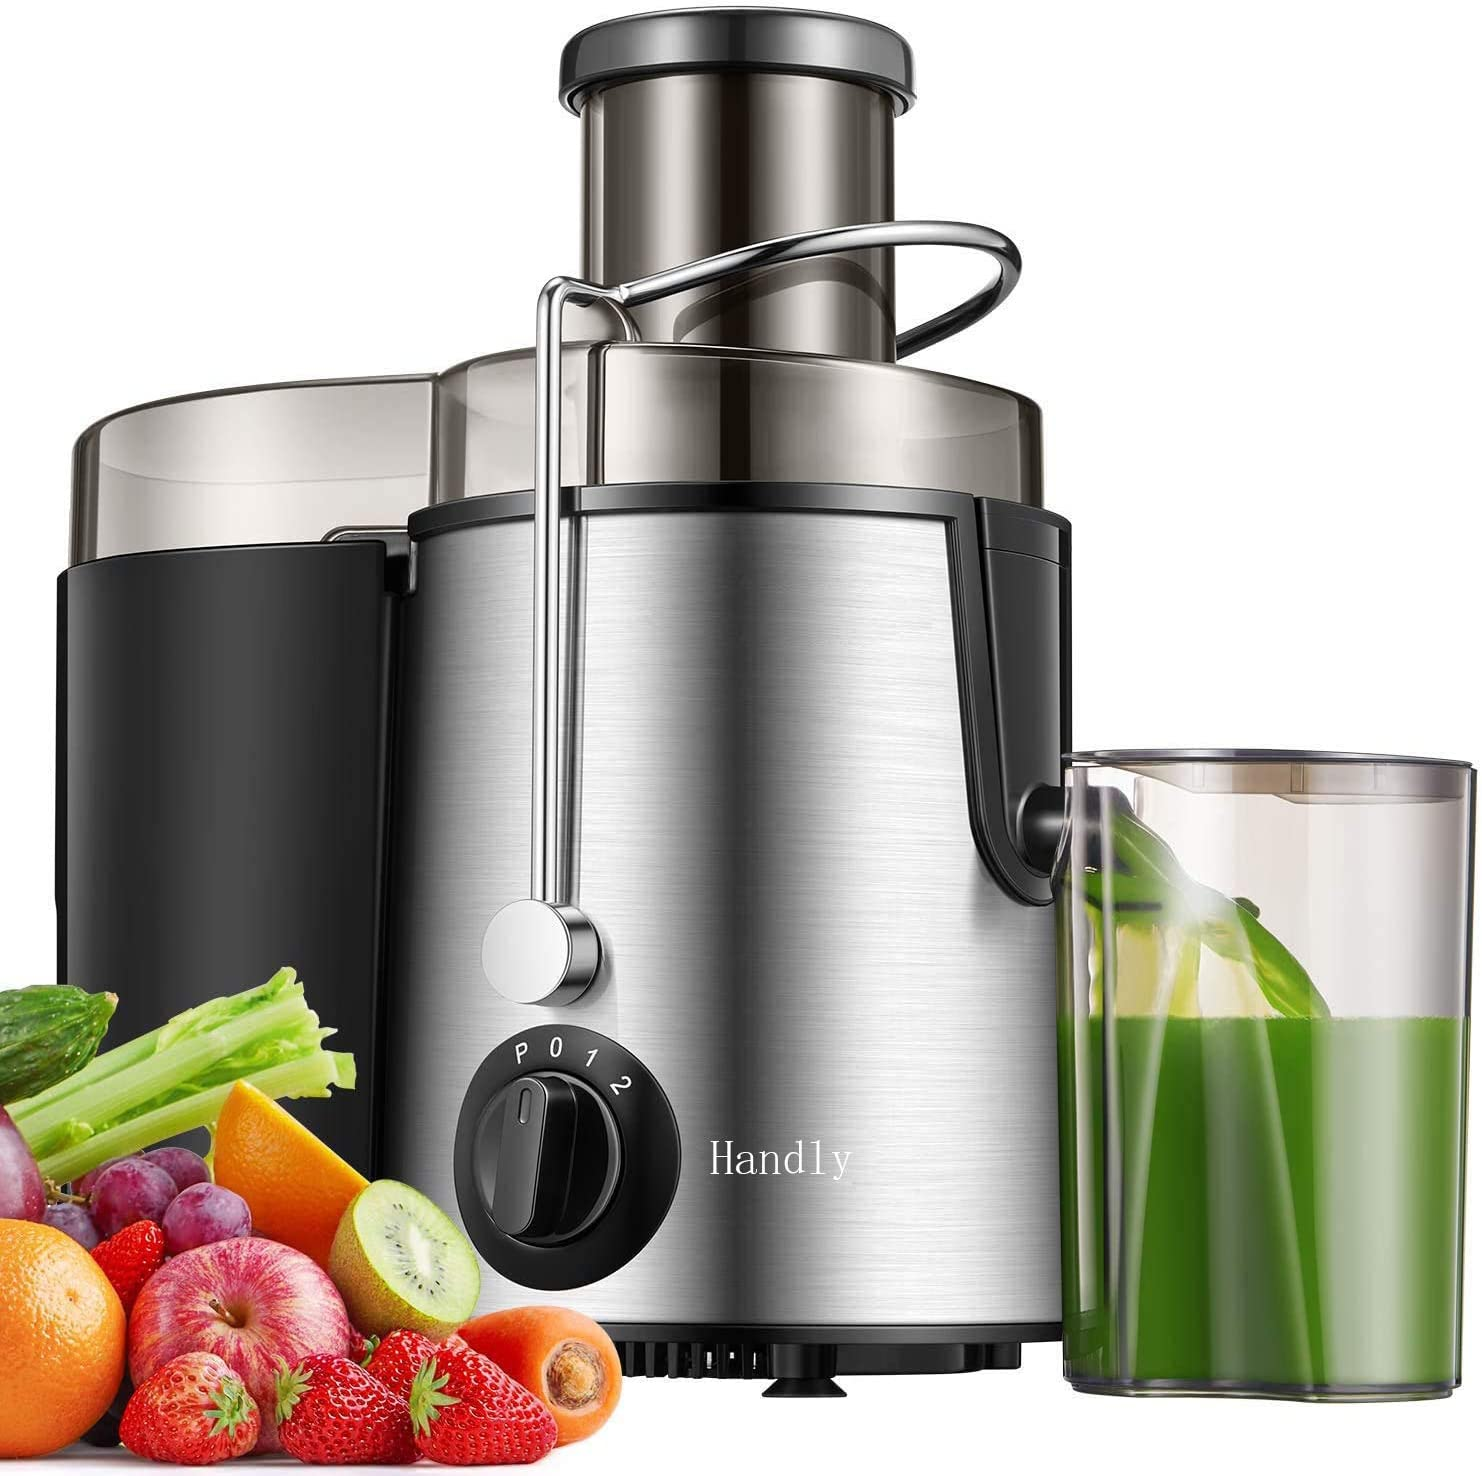 Handly Wide Chute Juicer 正規店 Machines Extractor 国内正規総代理店アイテム fo Centrifugal Juice